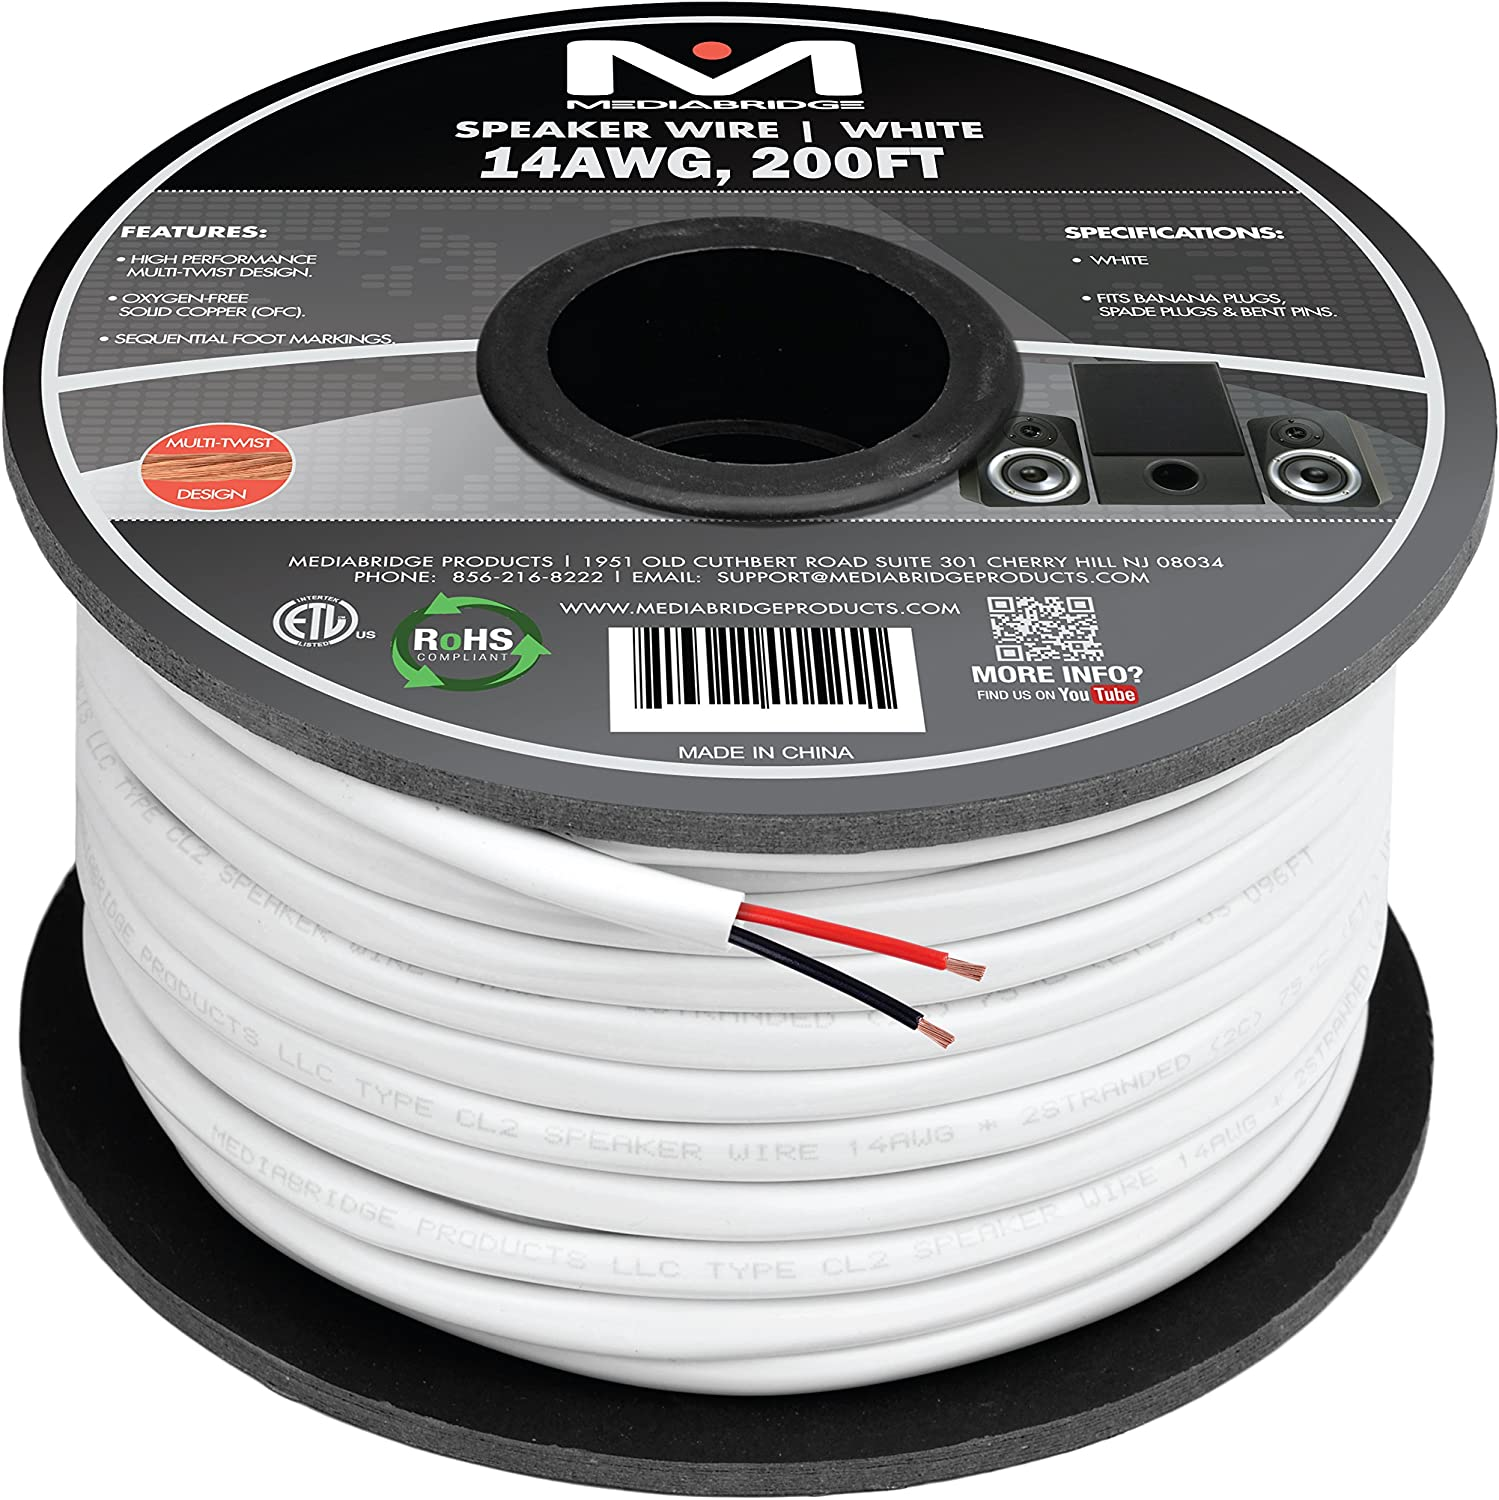 Mediabridge 14AWG 2-Conductor Speaker Wire (200 Feet, White) - 99.9% Oxygen Free Copper – ETL Listed & CL2 Rated for in-Wall Use (Part# SW-14X2-200-WH)